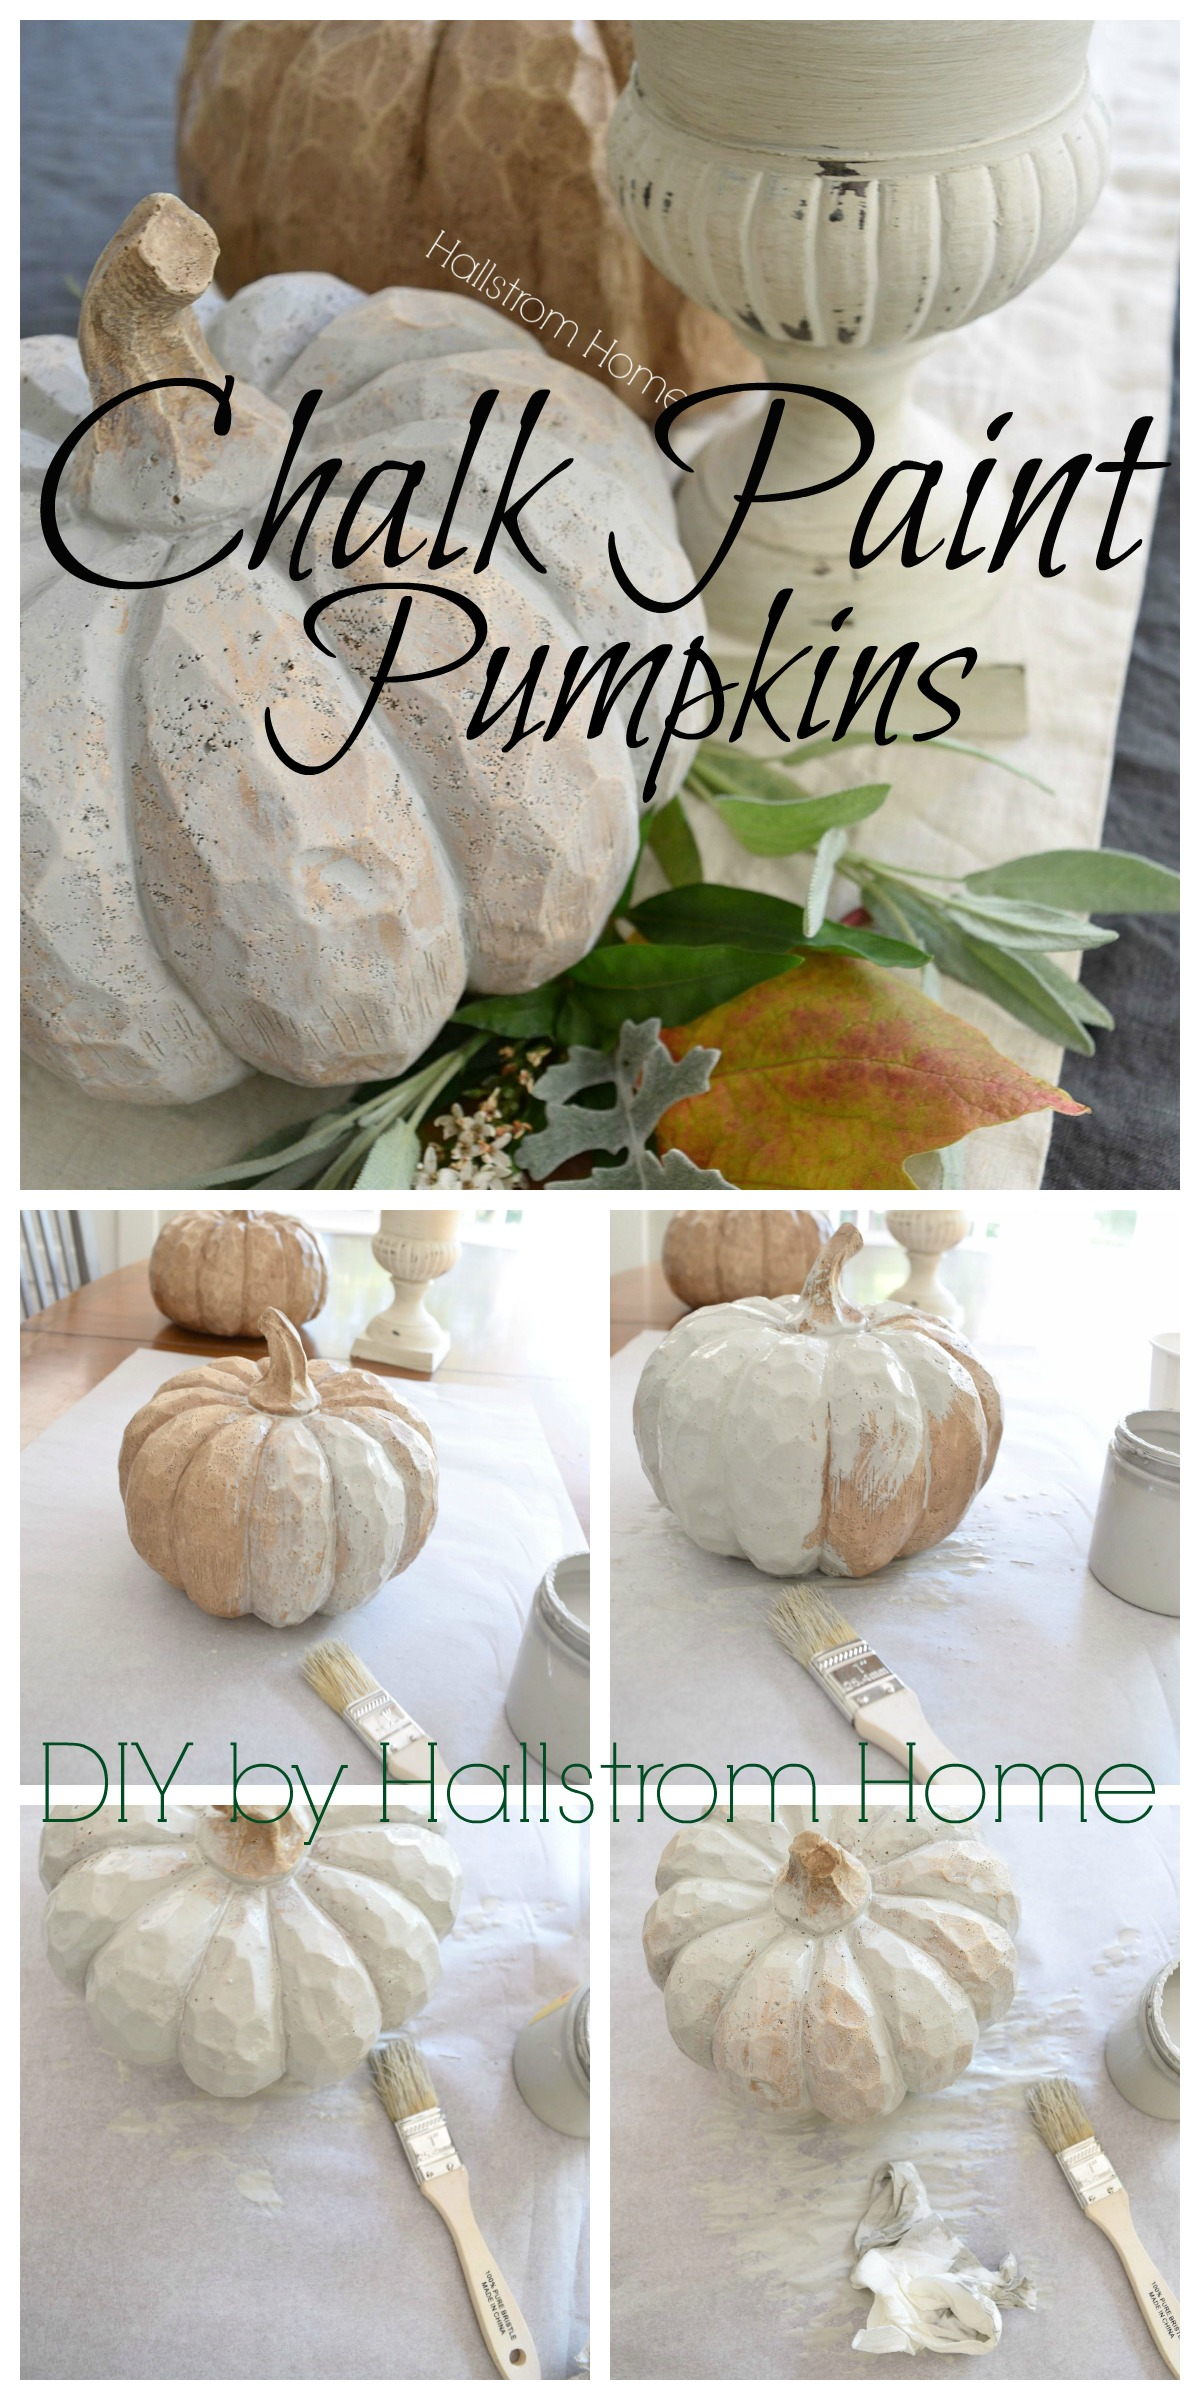 Chalk paint your own pumpiks just in time for Fall!